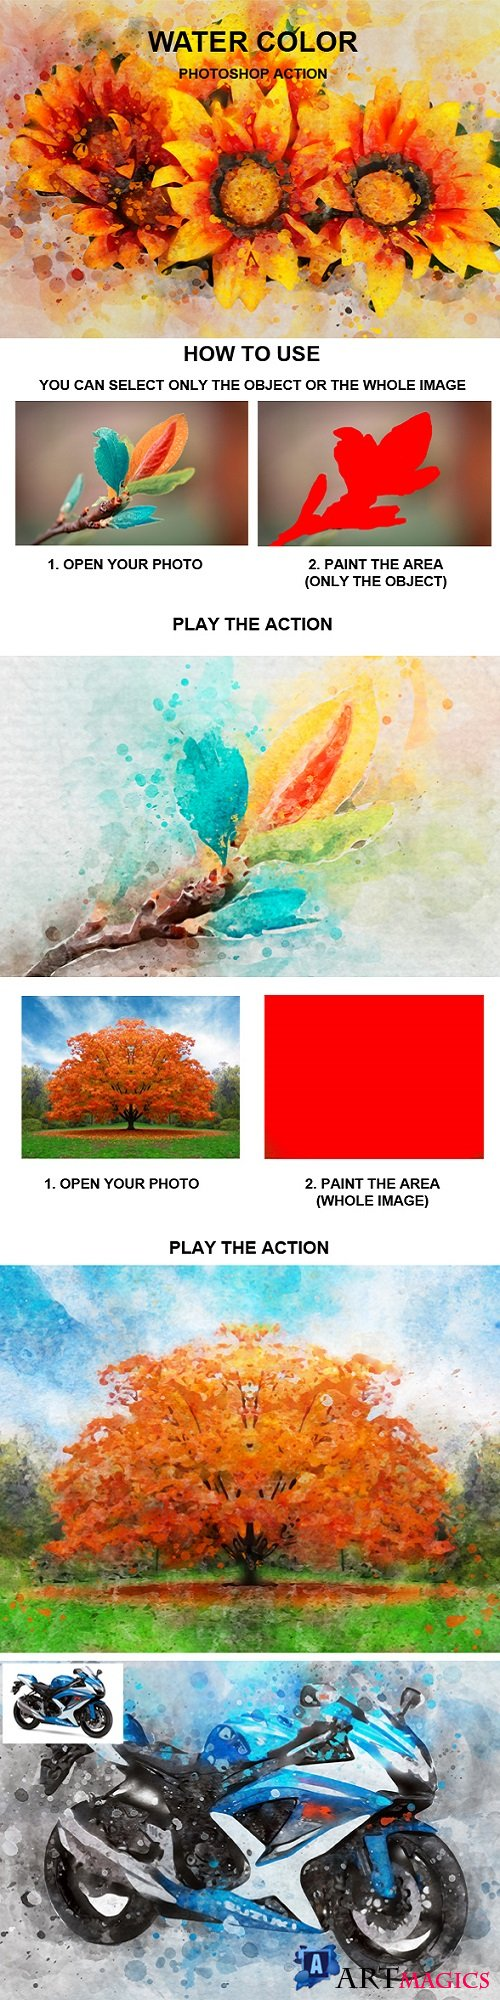 Water Color Photoshop Action 21335893